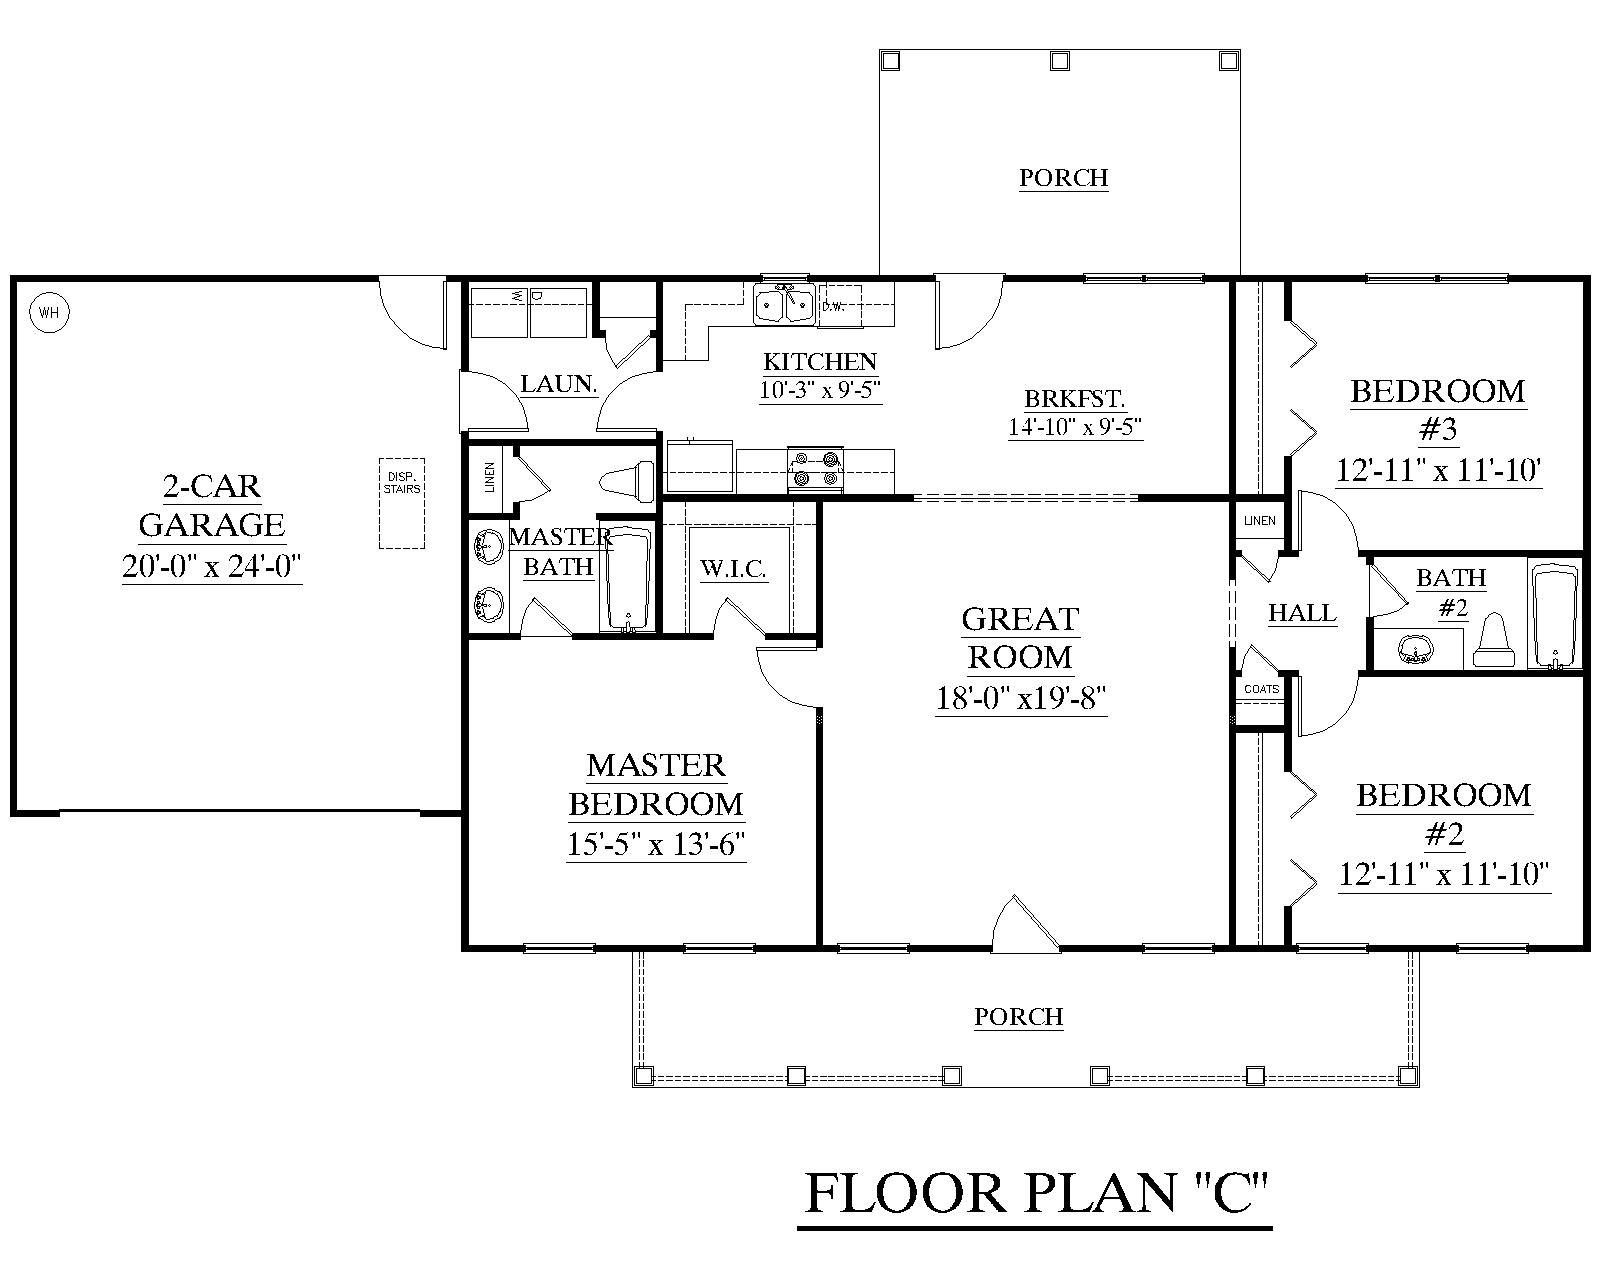 House plan 1500 c the james c attractive one story ranch for 3 bedroom 1 story house plans